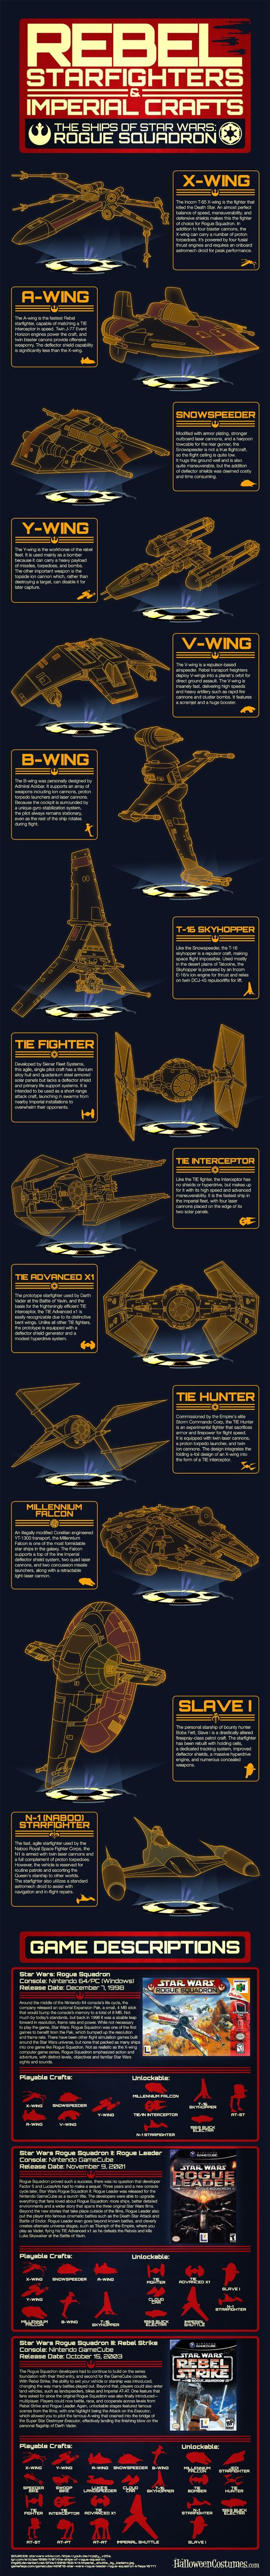 Rebel Starfighters and Imperial Craft: The Ships of Rogue Squadron #infographic #Games #Startwars